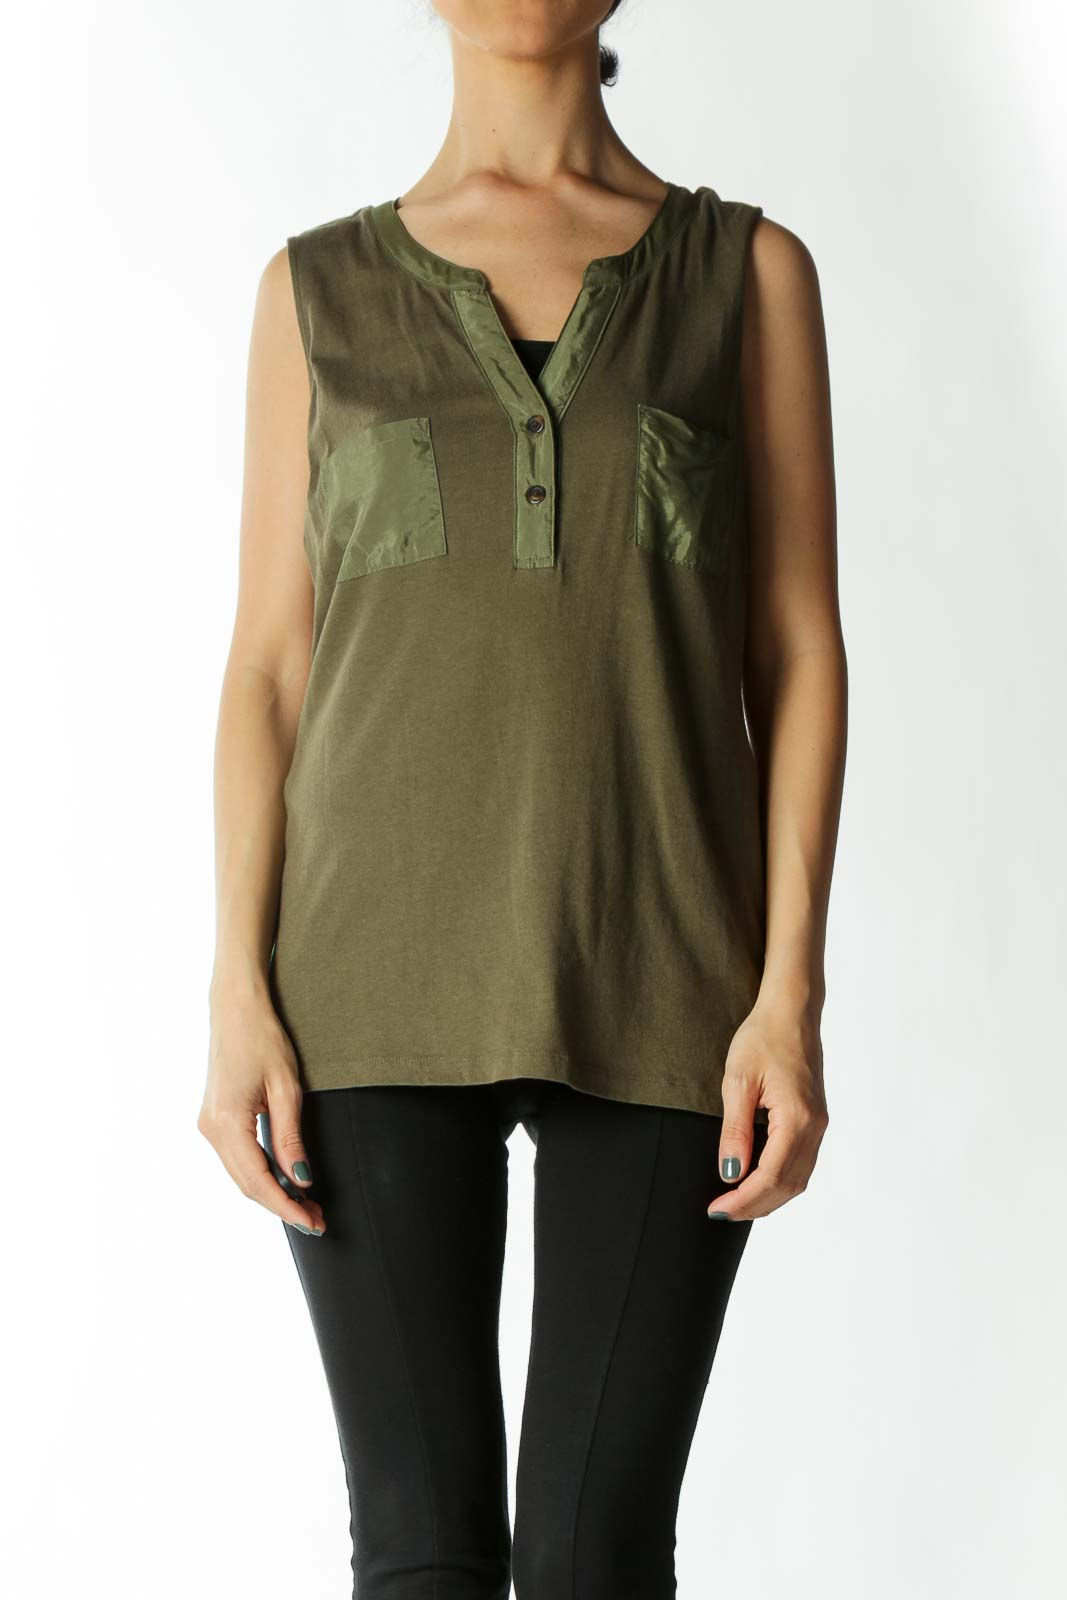 Olive Tank with Faux-Satin Breast Pockets and Piping